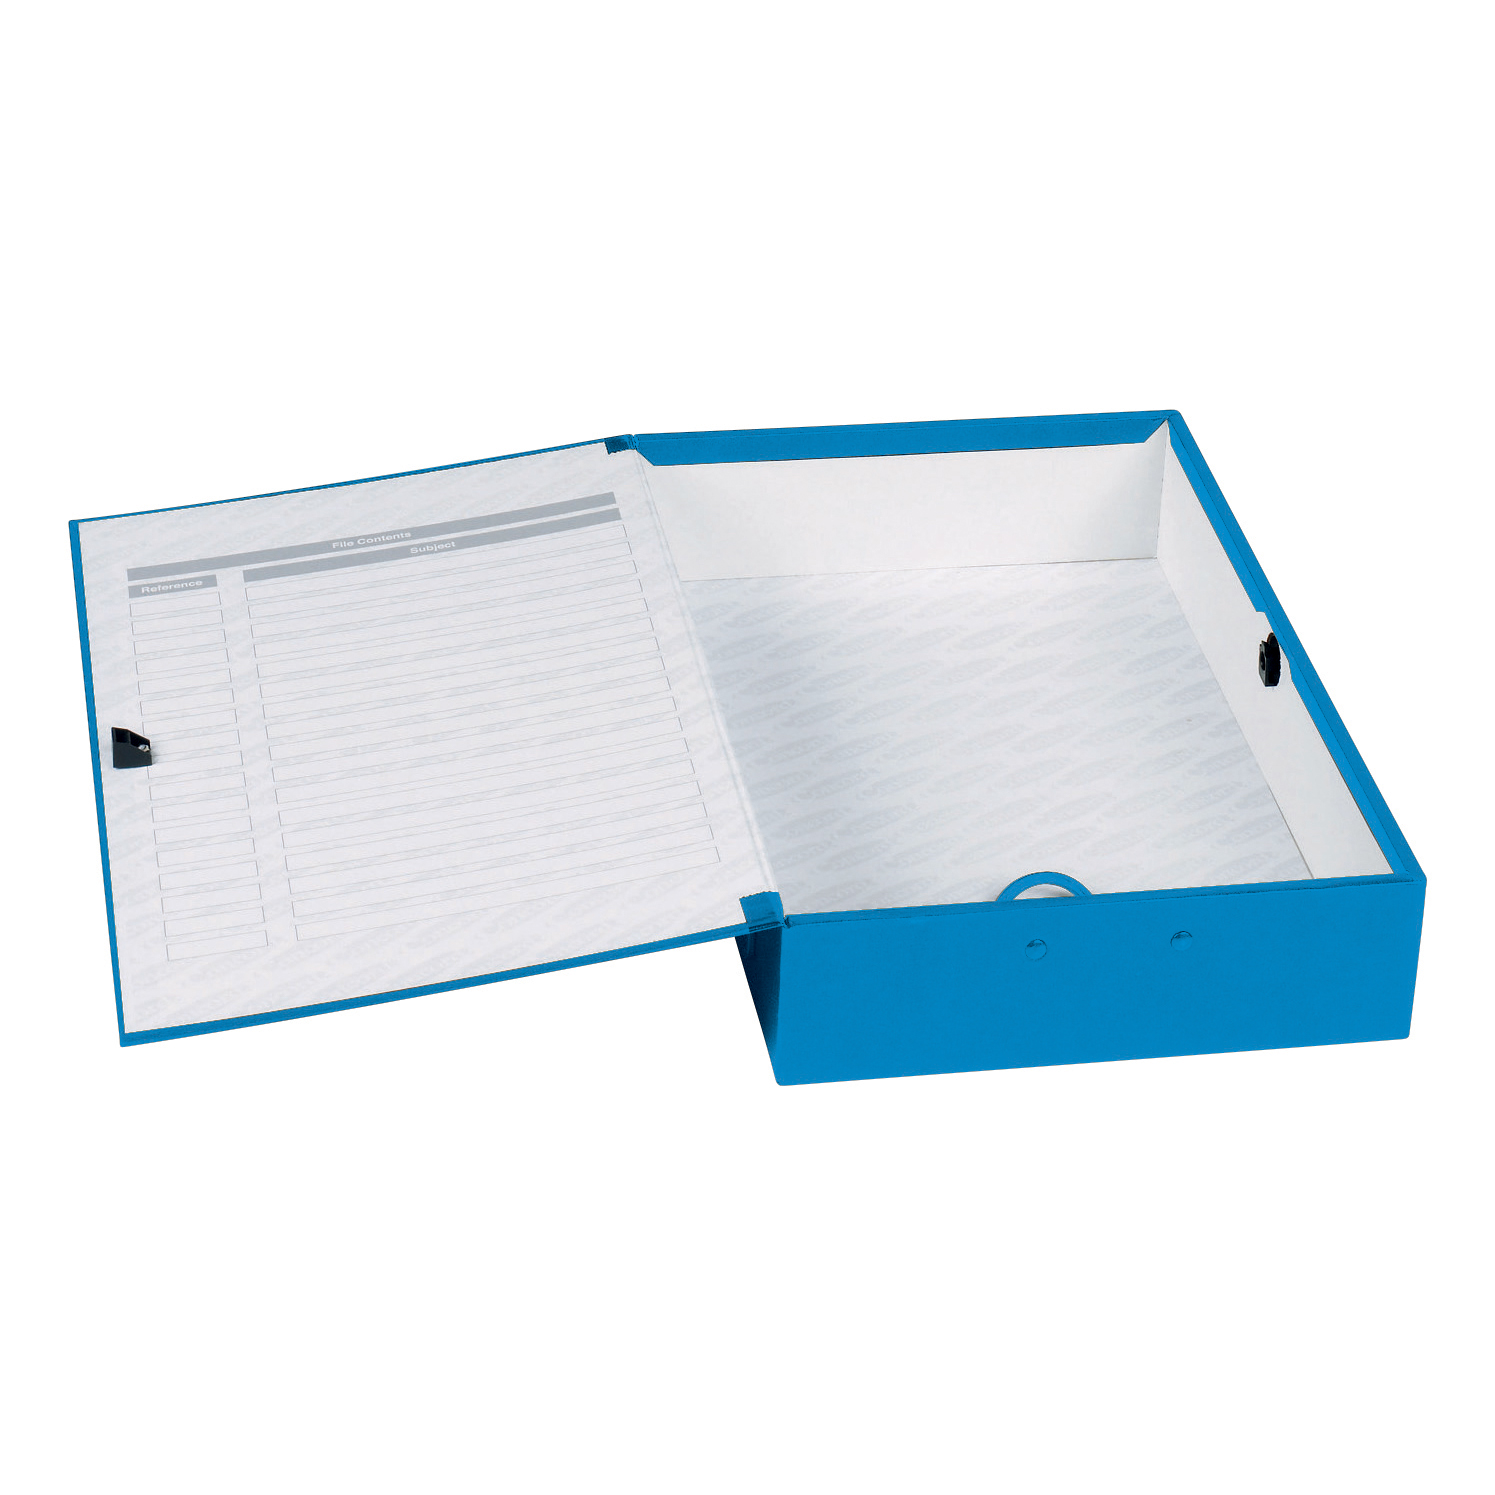 Box Files Concord Classic Box File 75mm Spine Foolscap Blue Ref C1278 Pack 5